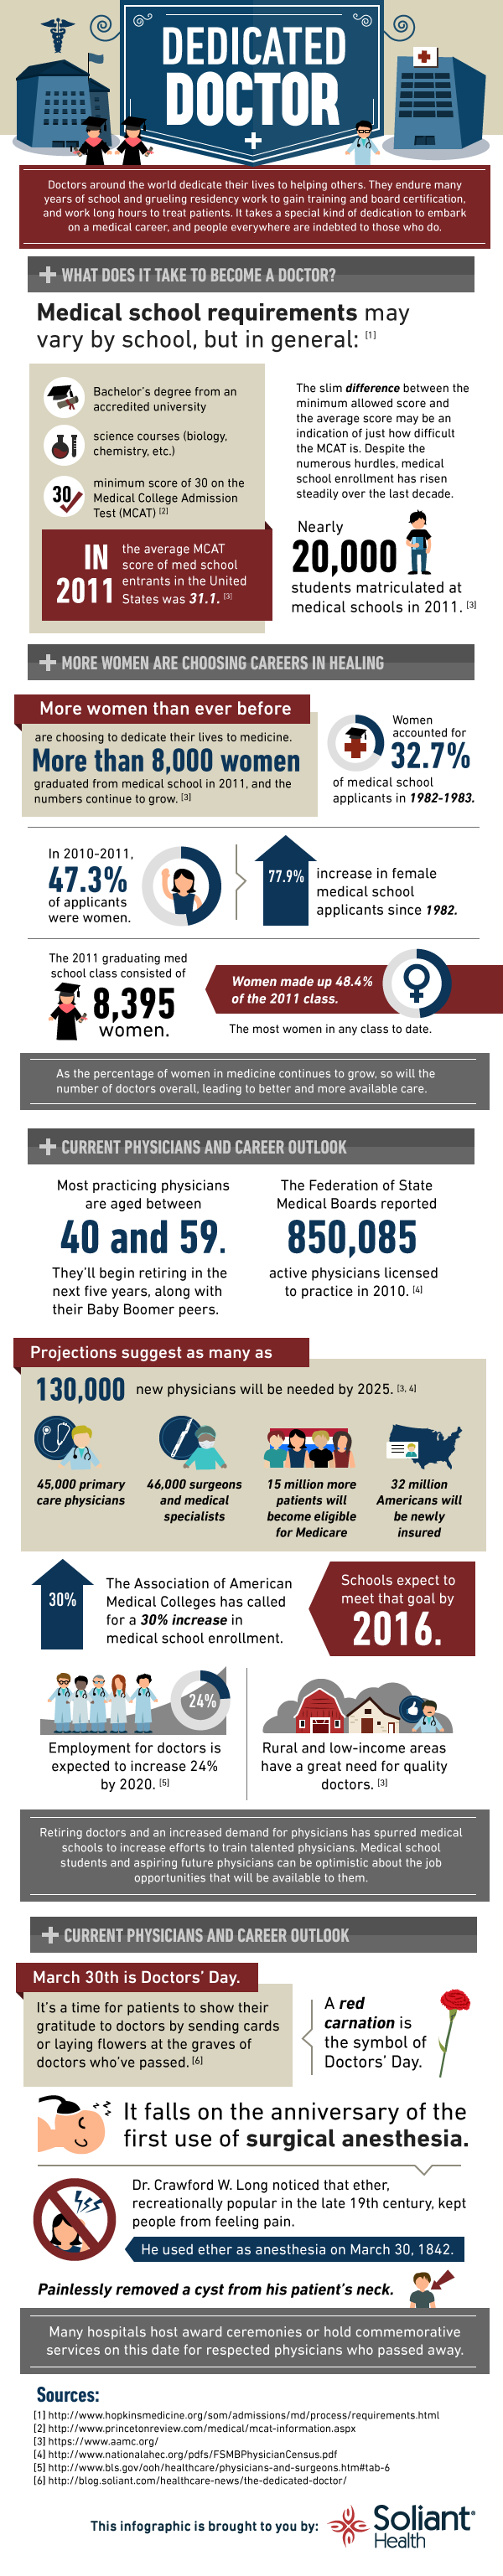 Doctor Career Outlook-Infographic